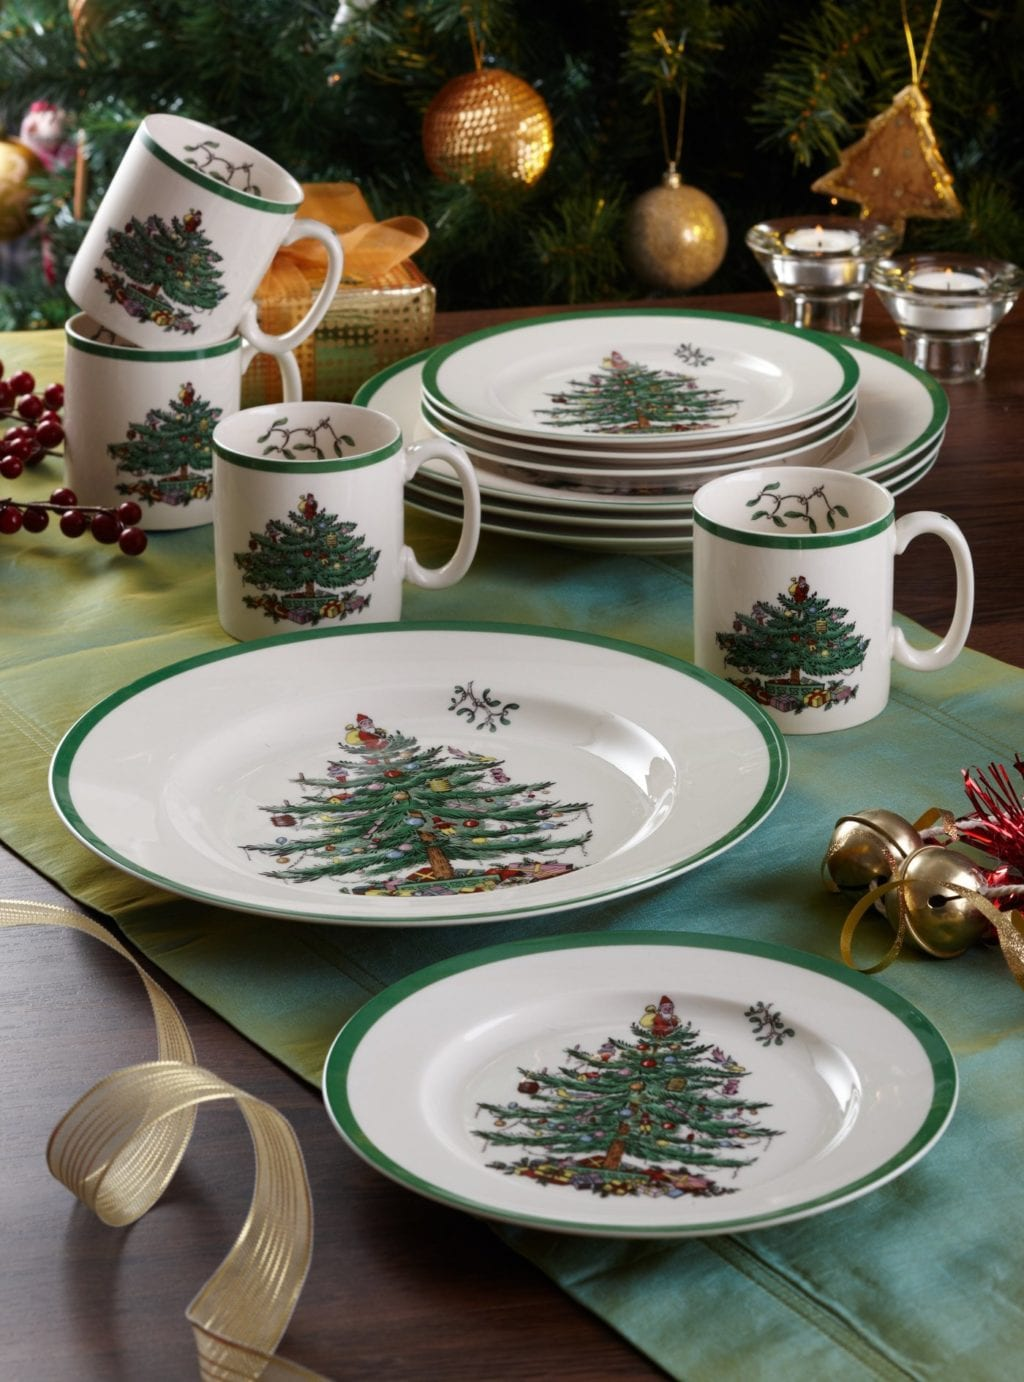 set of Christmas dinnerware